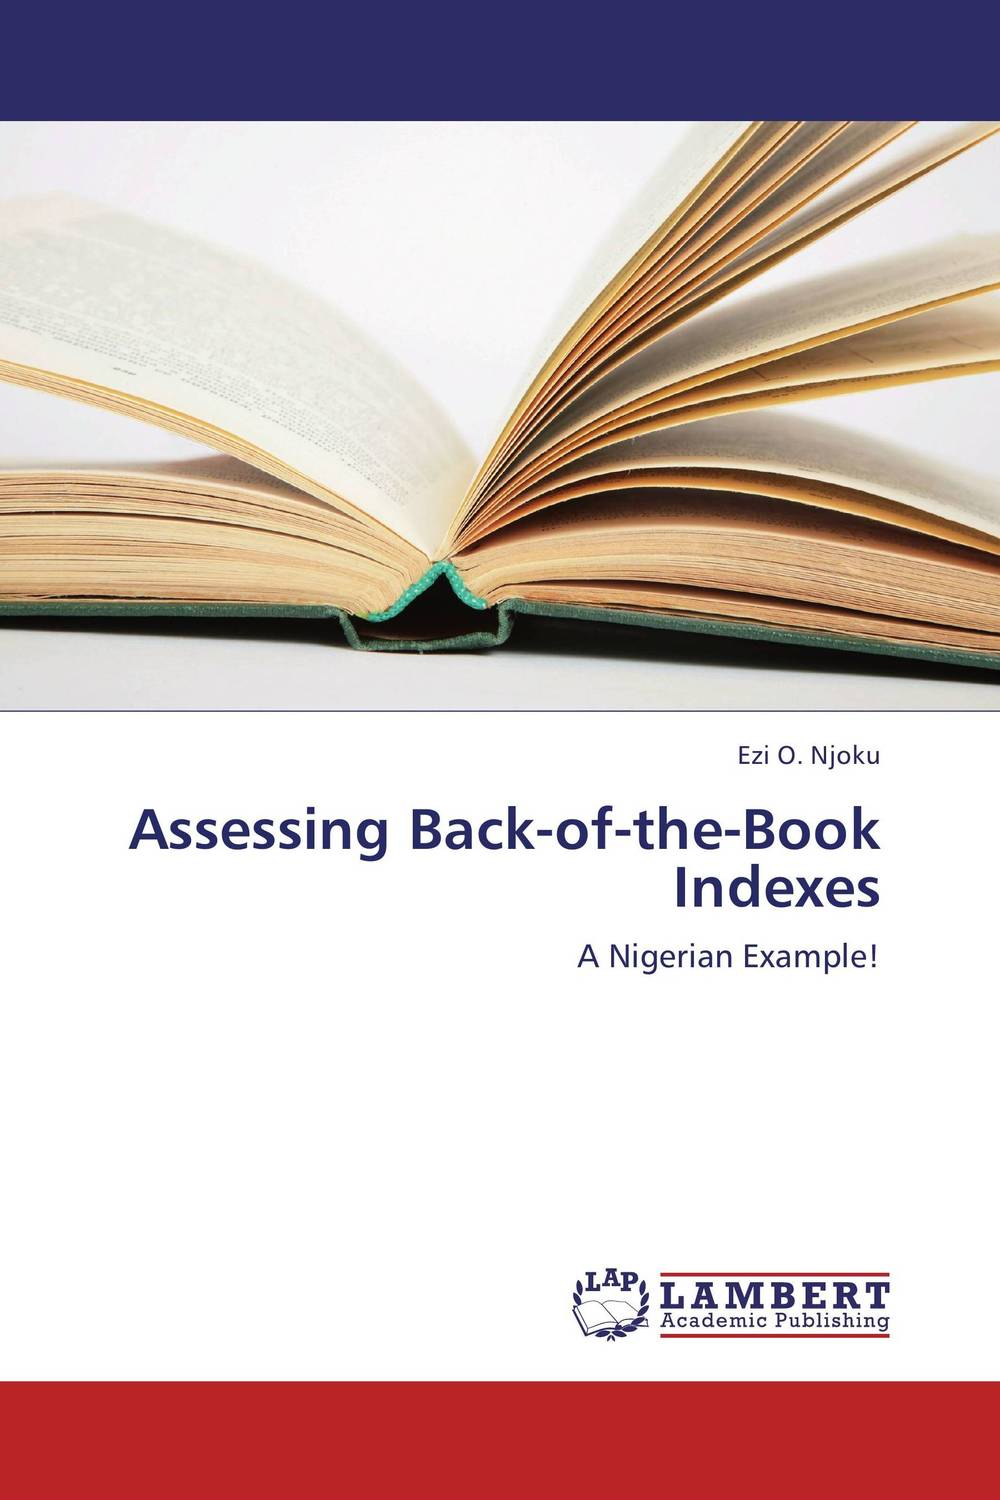 Assessing Back-of-the-Book Indexes an assessment of indexing and abstracting services